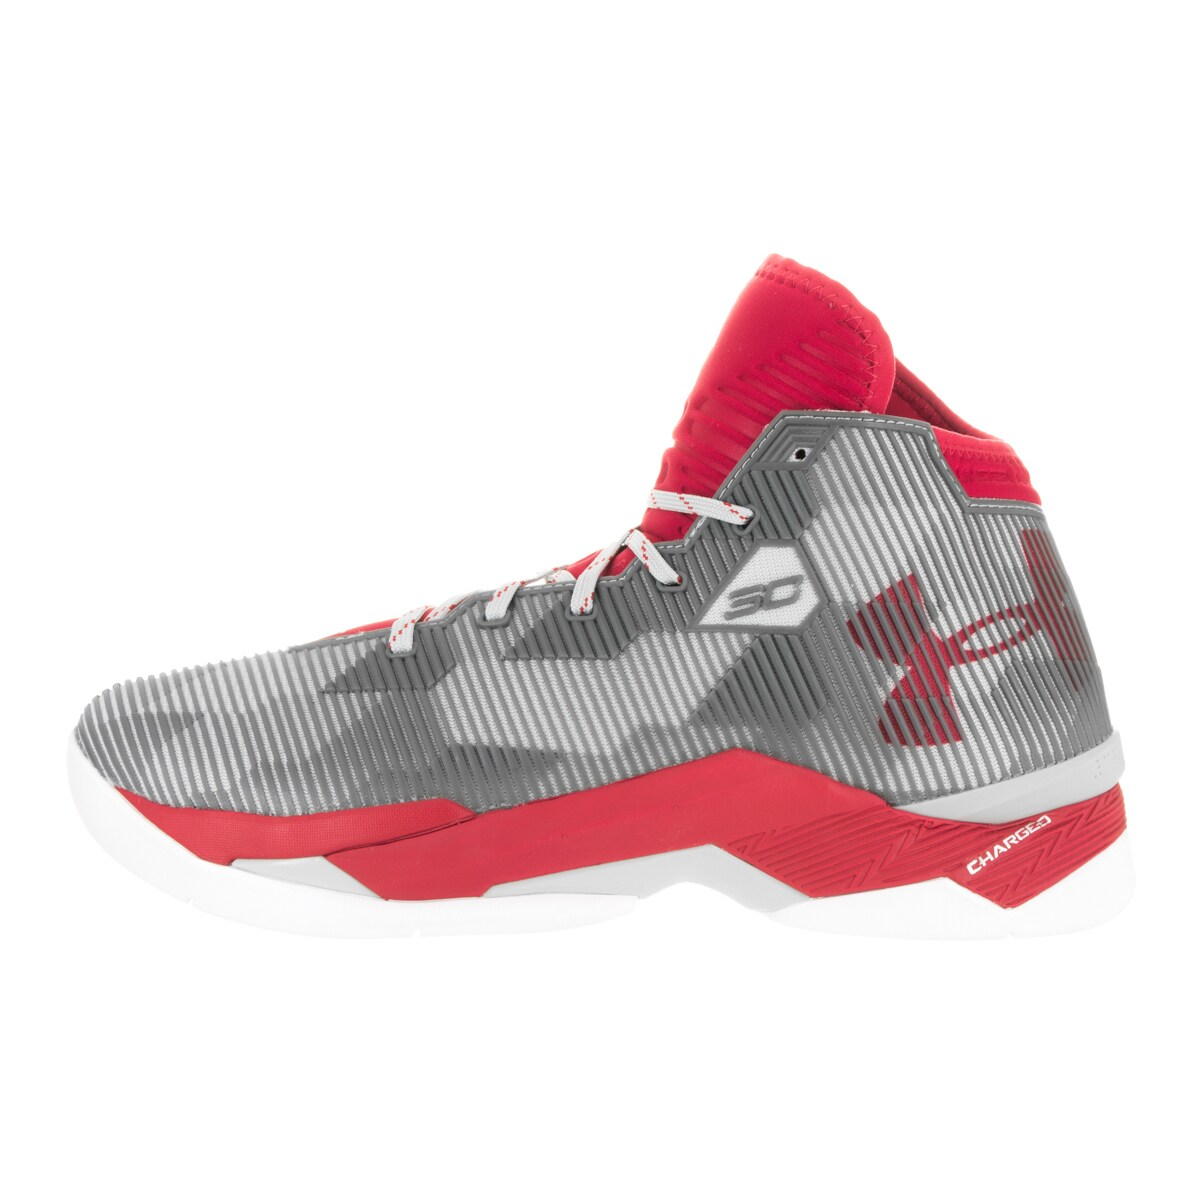 e88e4a529485 Shop Under Armour Men s Curry 2.5 Red Alu Red Basketball Shoe - Free  Shipping Today - Overstock - 13392188